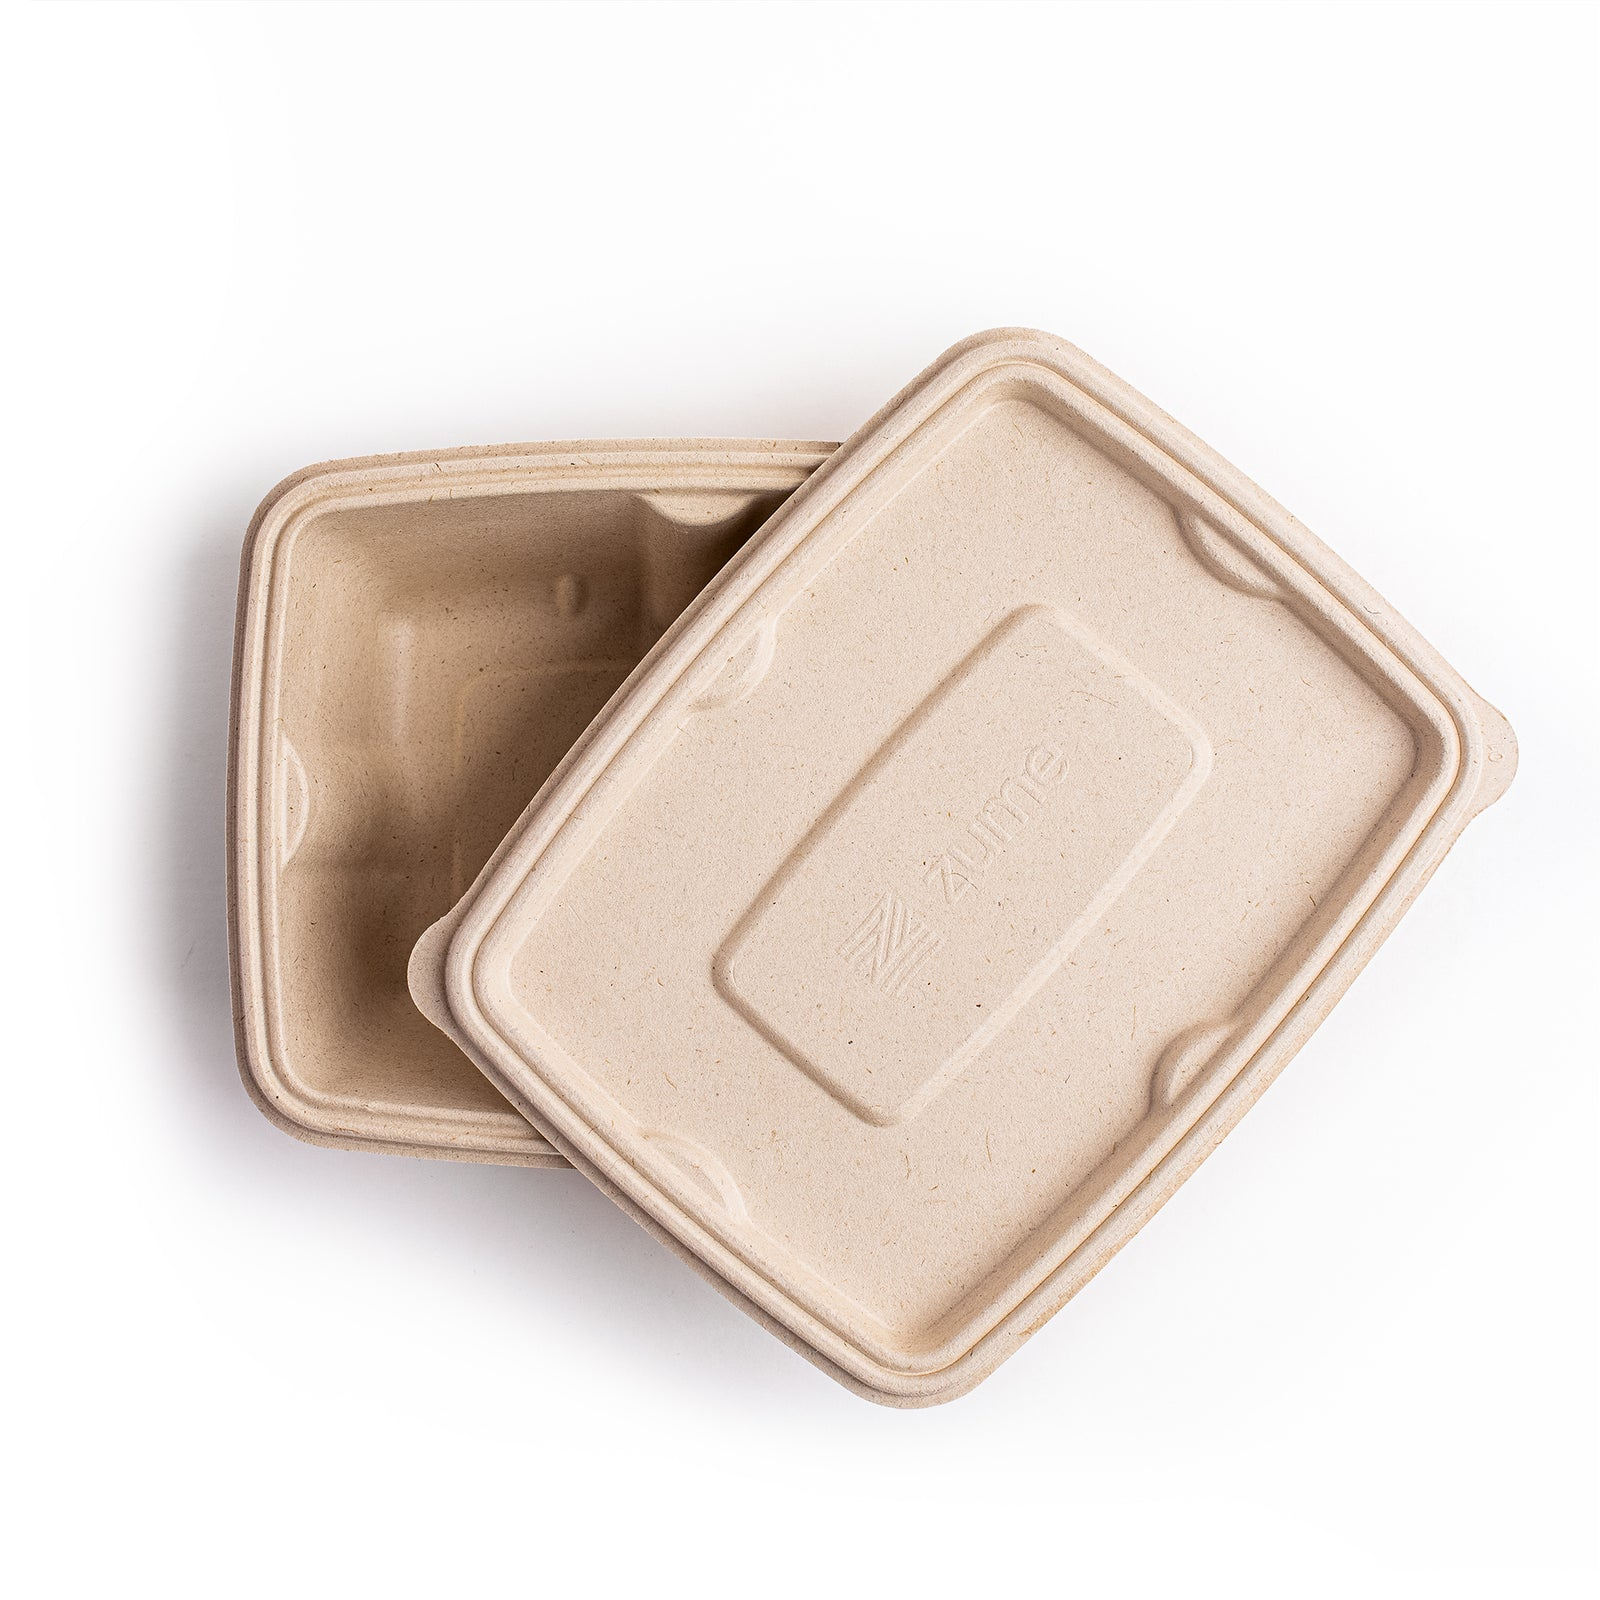 24oz/750ml Rectangular Container